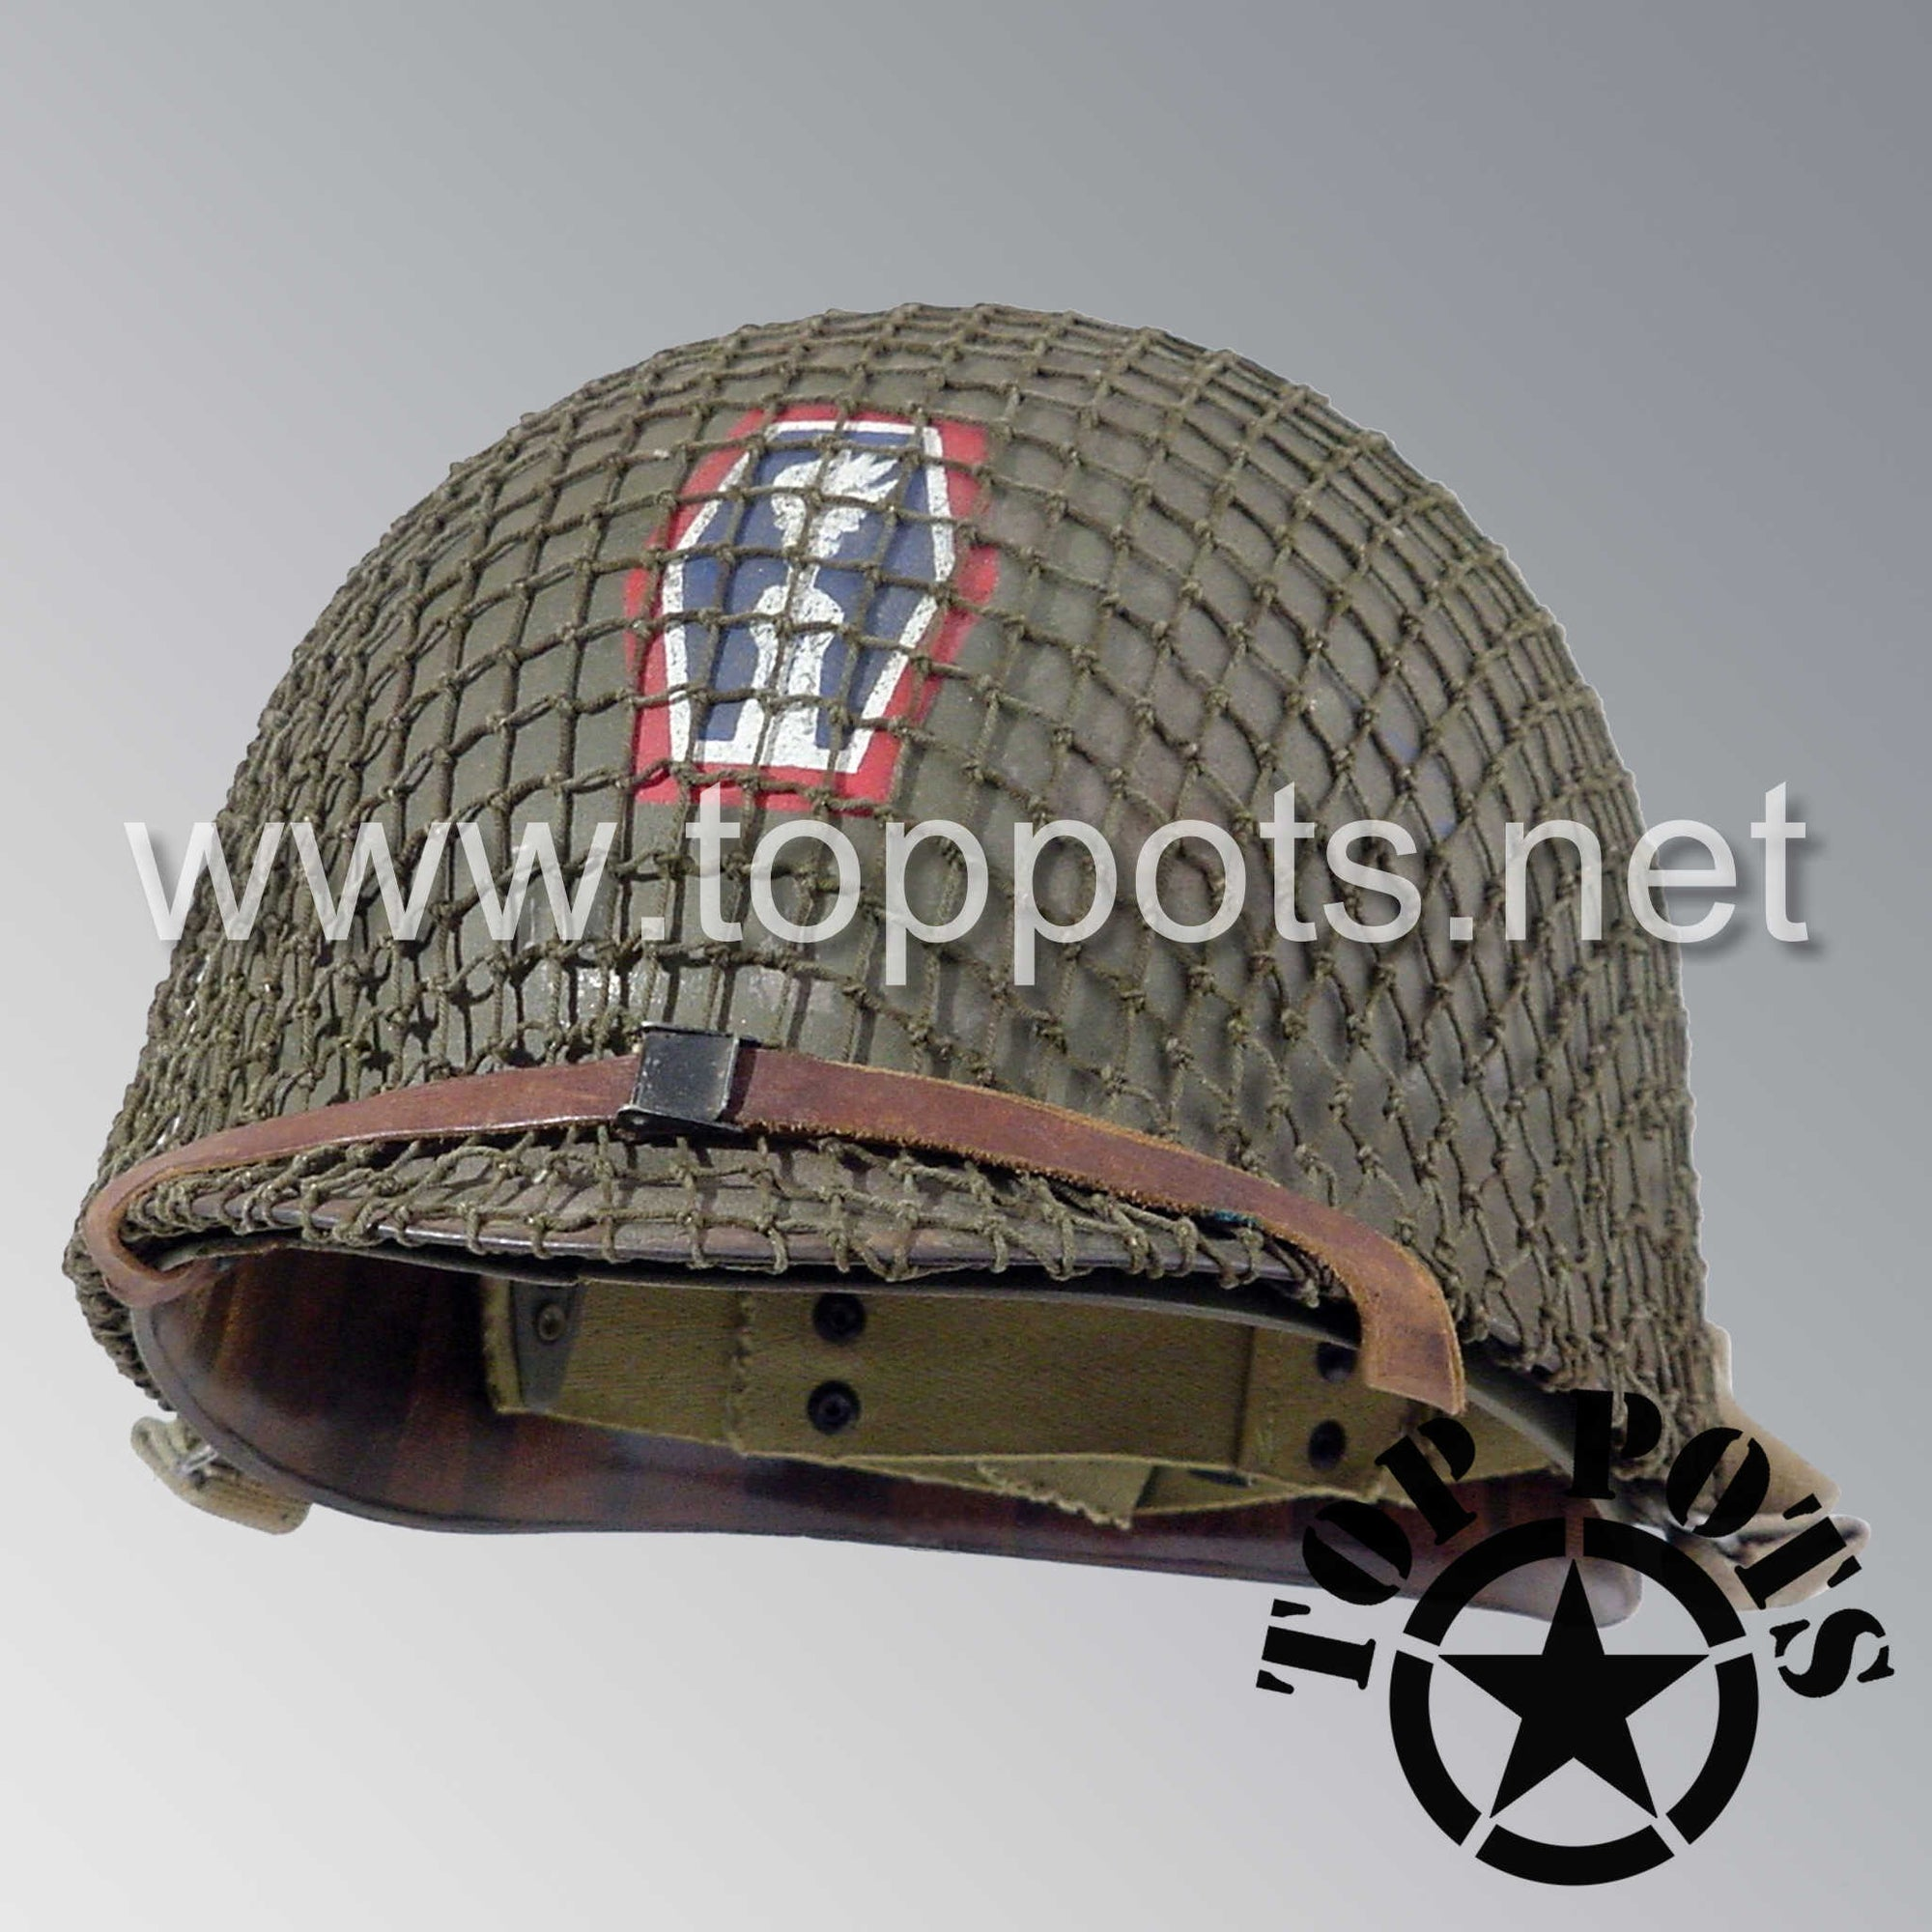 Image 1 of WWII US Army Aged Original M1 Infantry Helmet Swivel Bale Shell and Liner with 442nd Infantry Division Emblem with Net